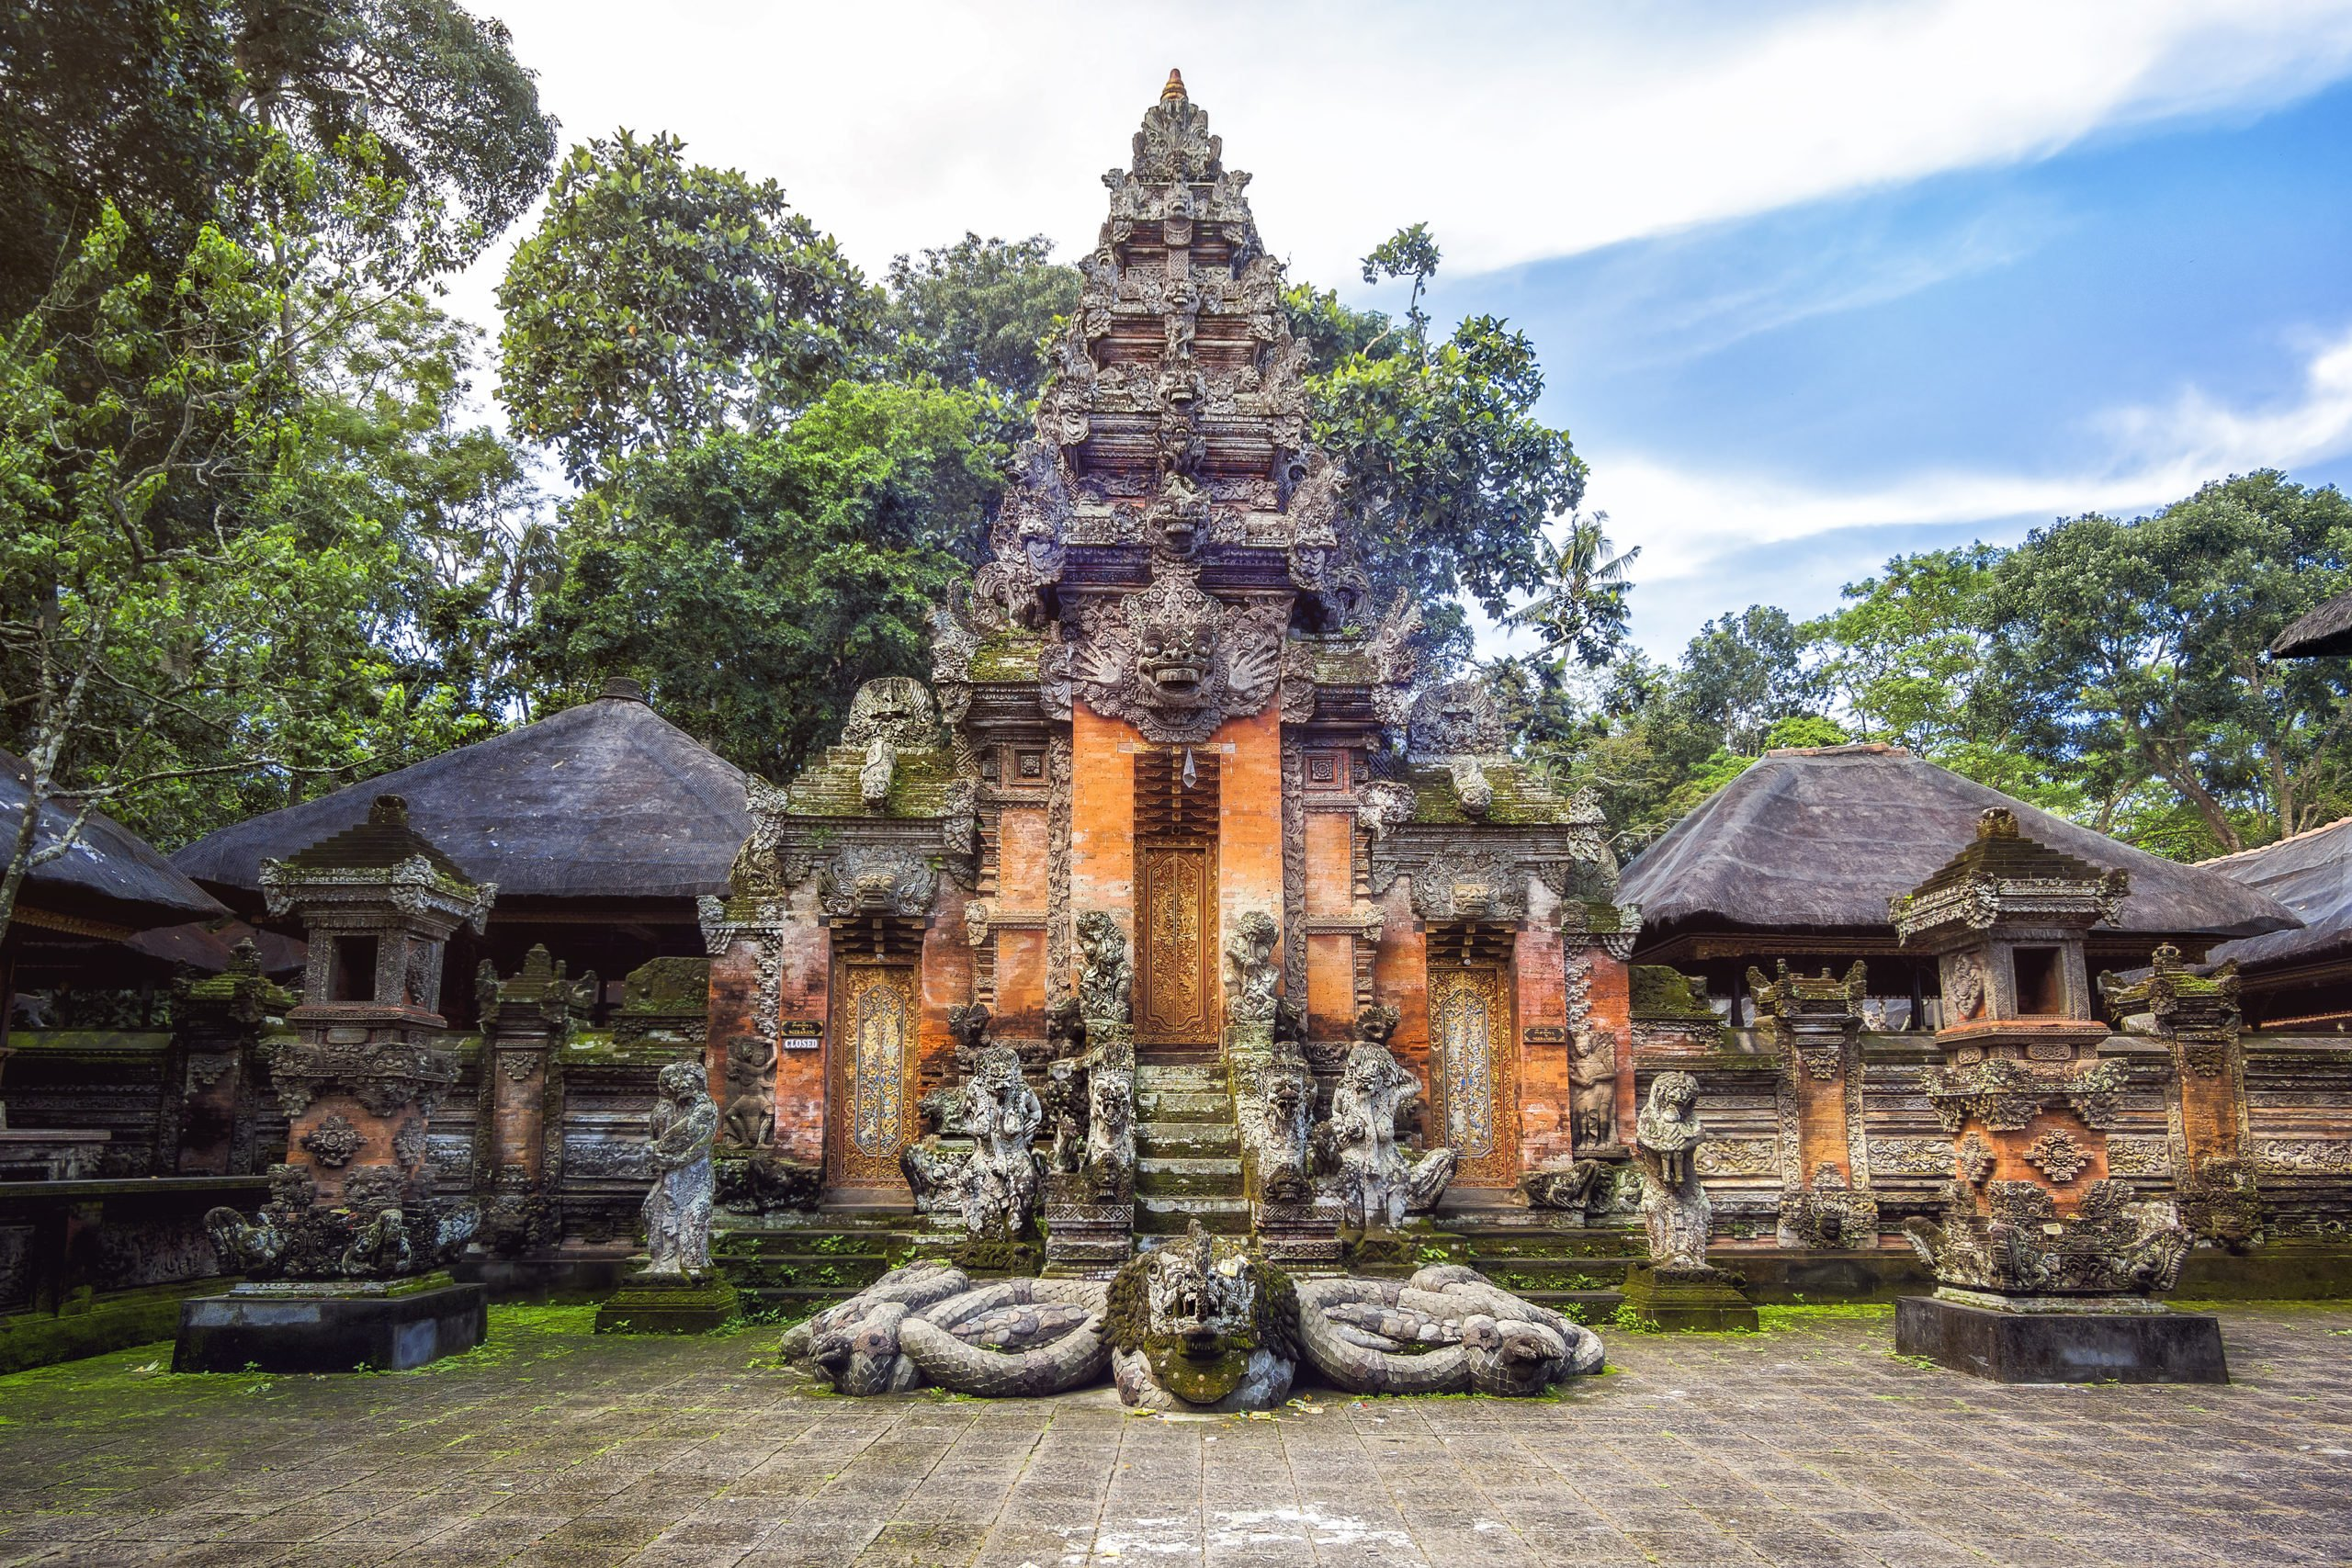 Discover The Temple In The Monkey Forest On The Ubud Village Tour